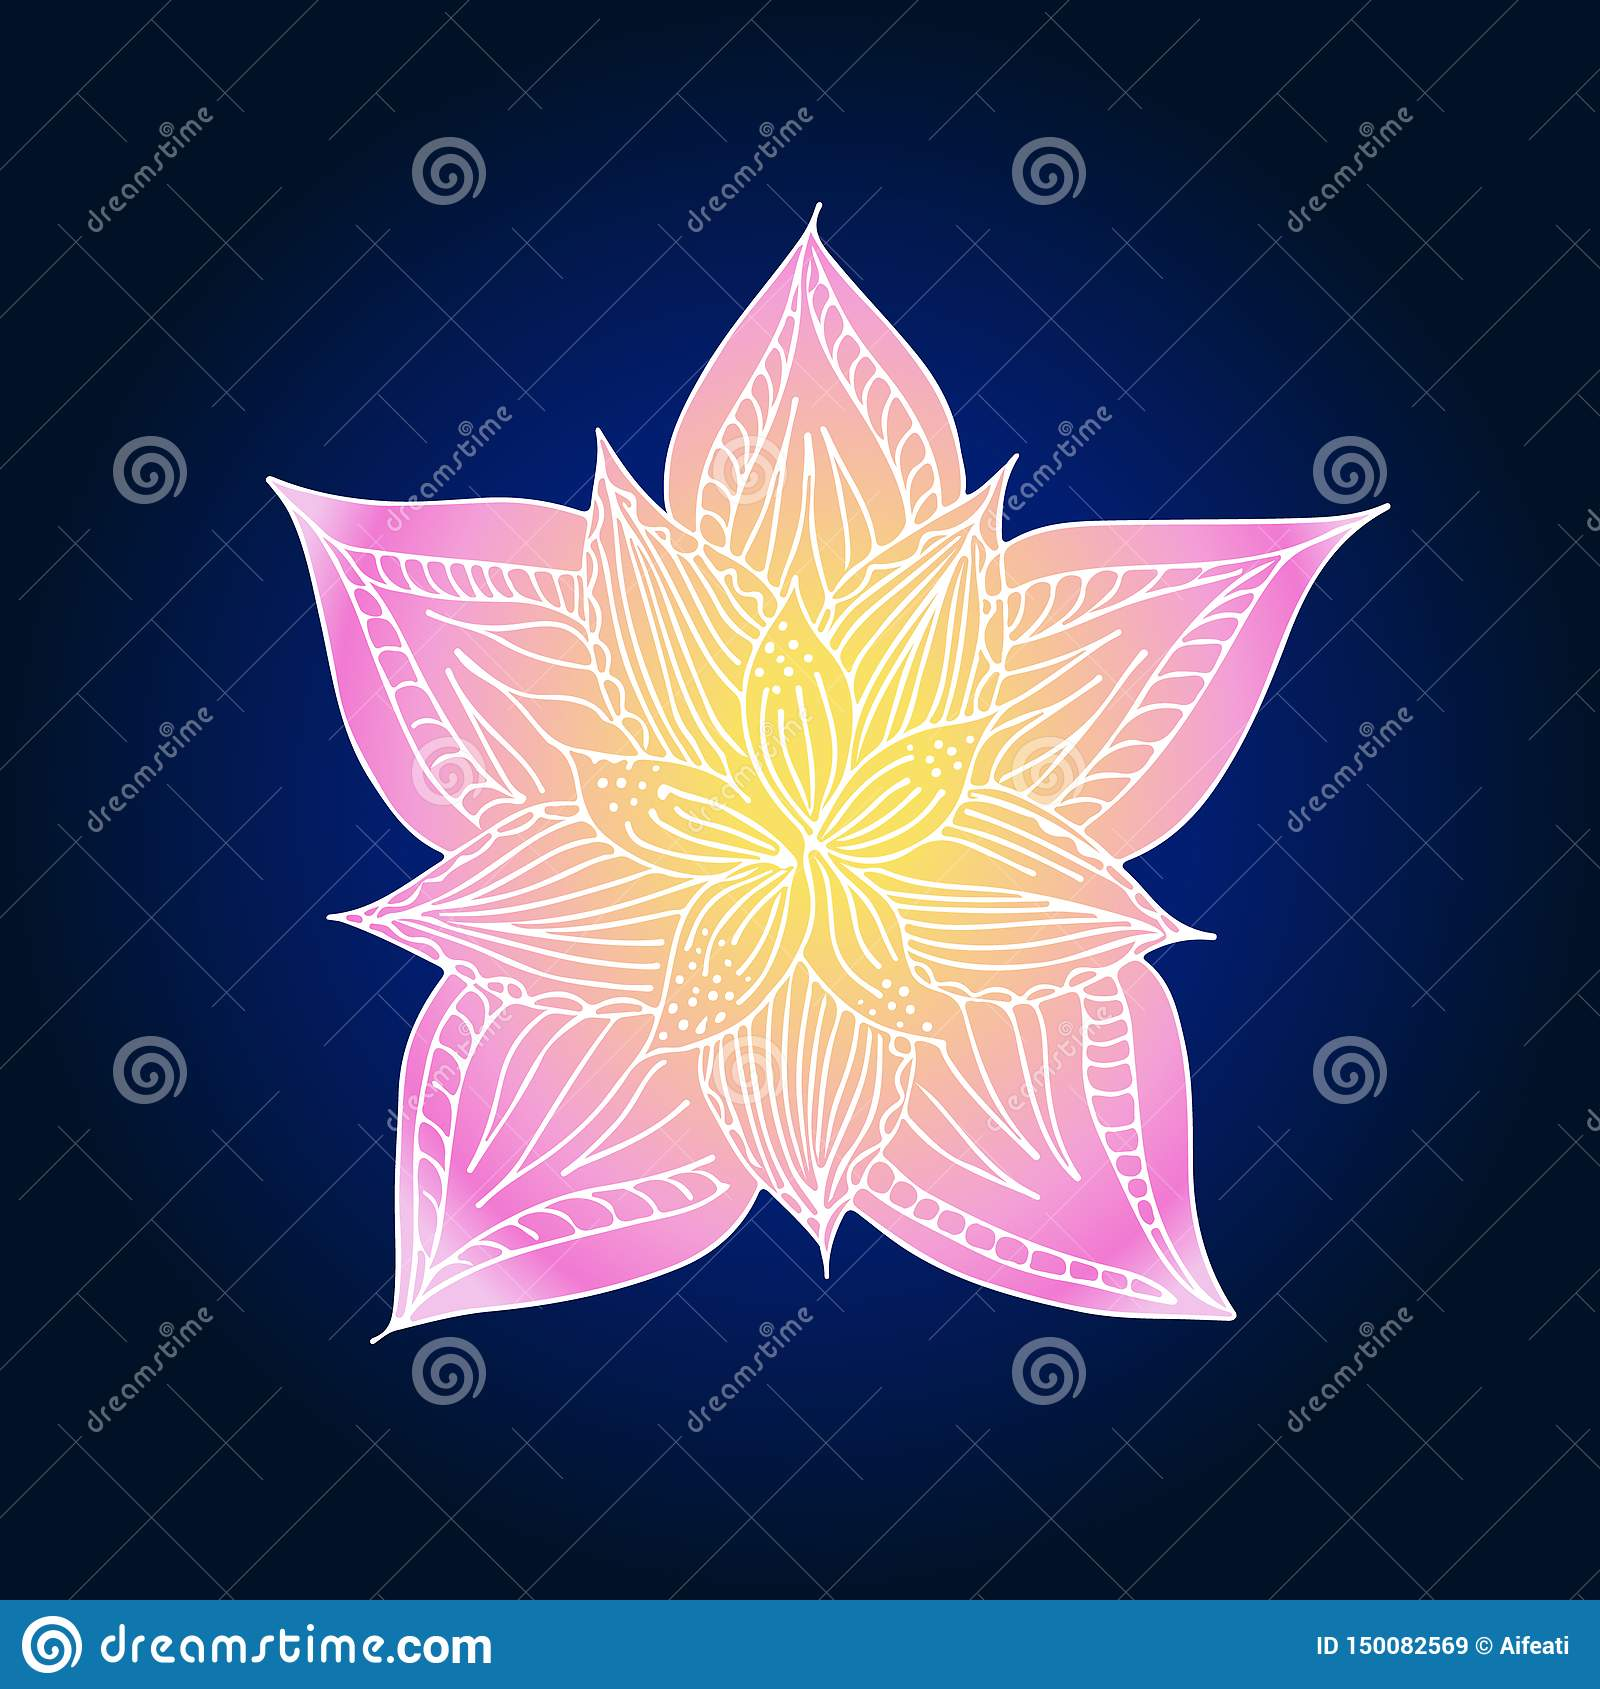 Abstract hand drawn lotus flower. illustration. Line art. Top view